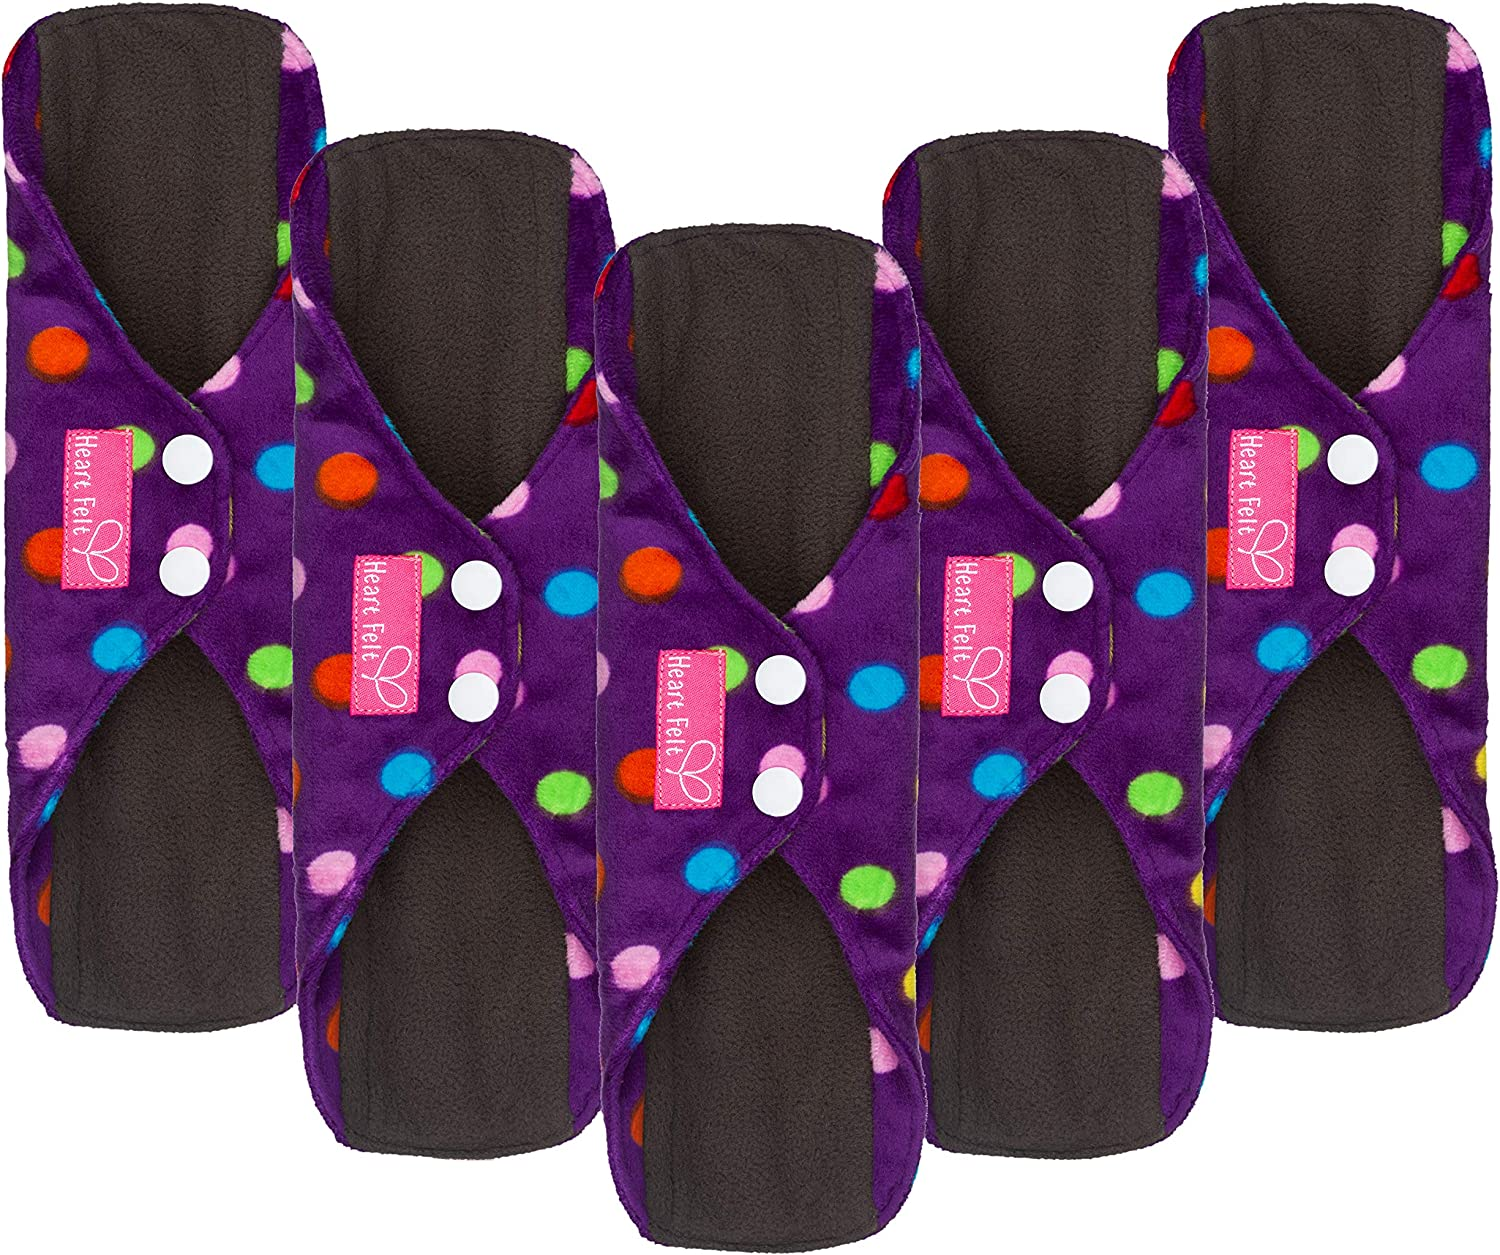 Sanitary Mesa Mall SEAL limited product Reusable Cloth Menstrual Pads by 5 Pack Was Heart Felt.